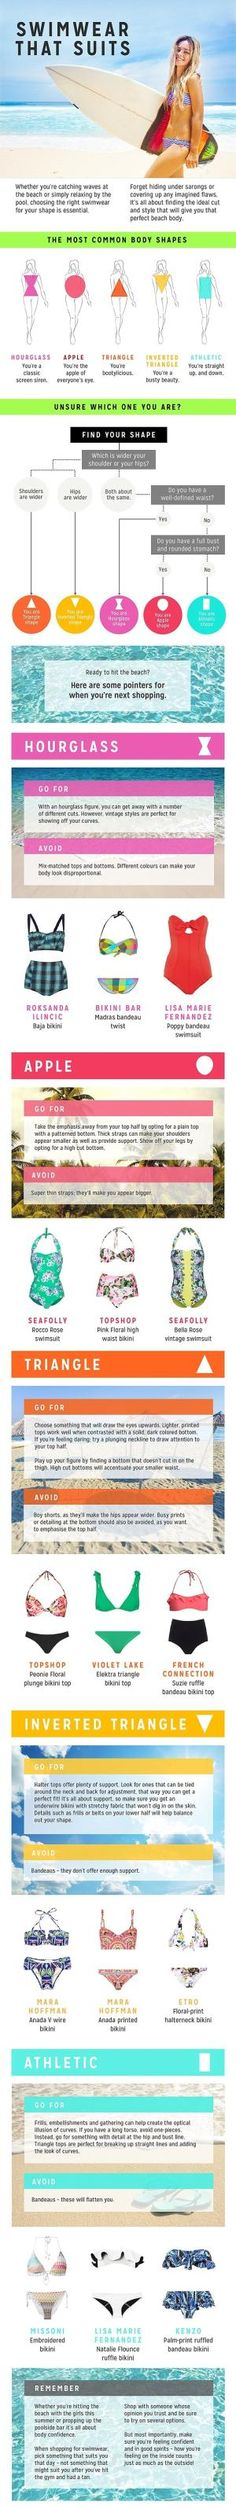 The Infographic that reveals how to choose the RIGHT swimsuit for your body type | Daily Mail Online by mry3